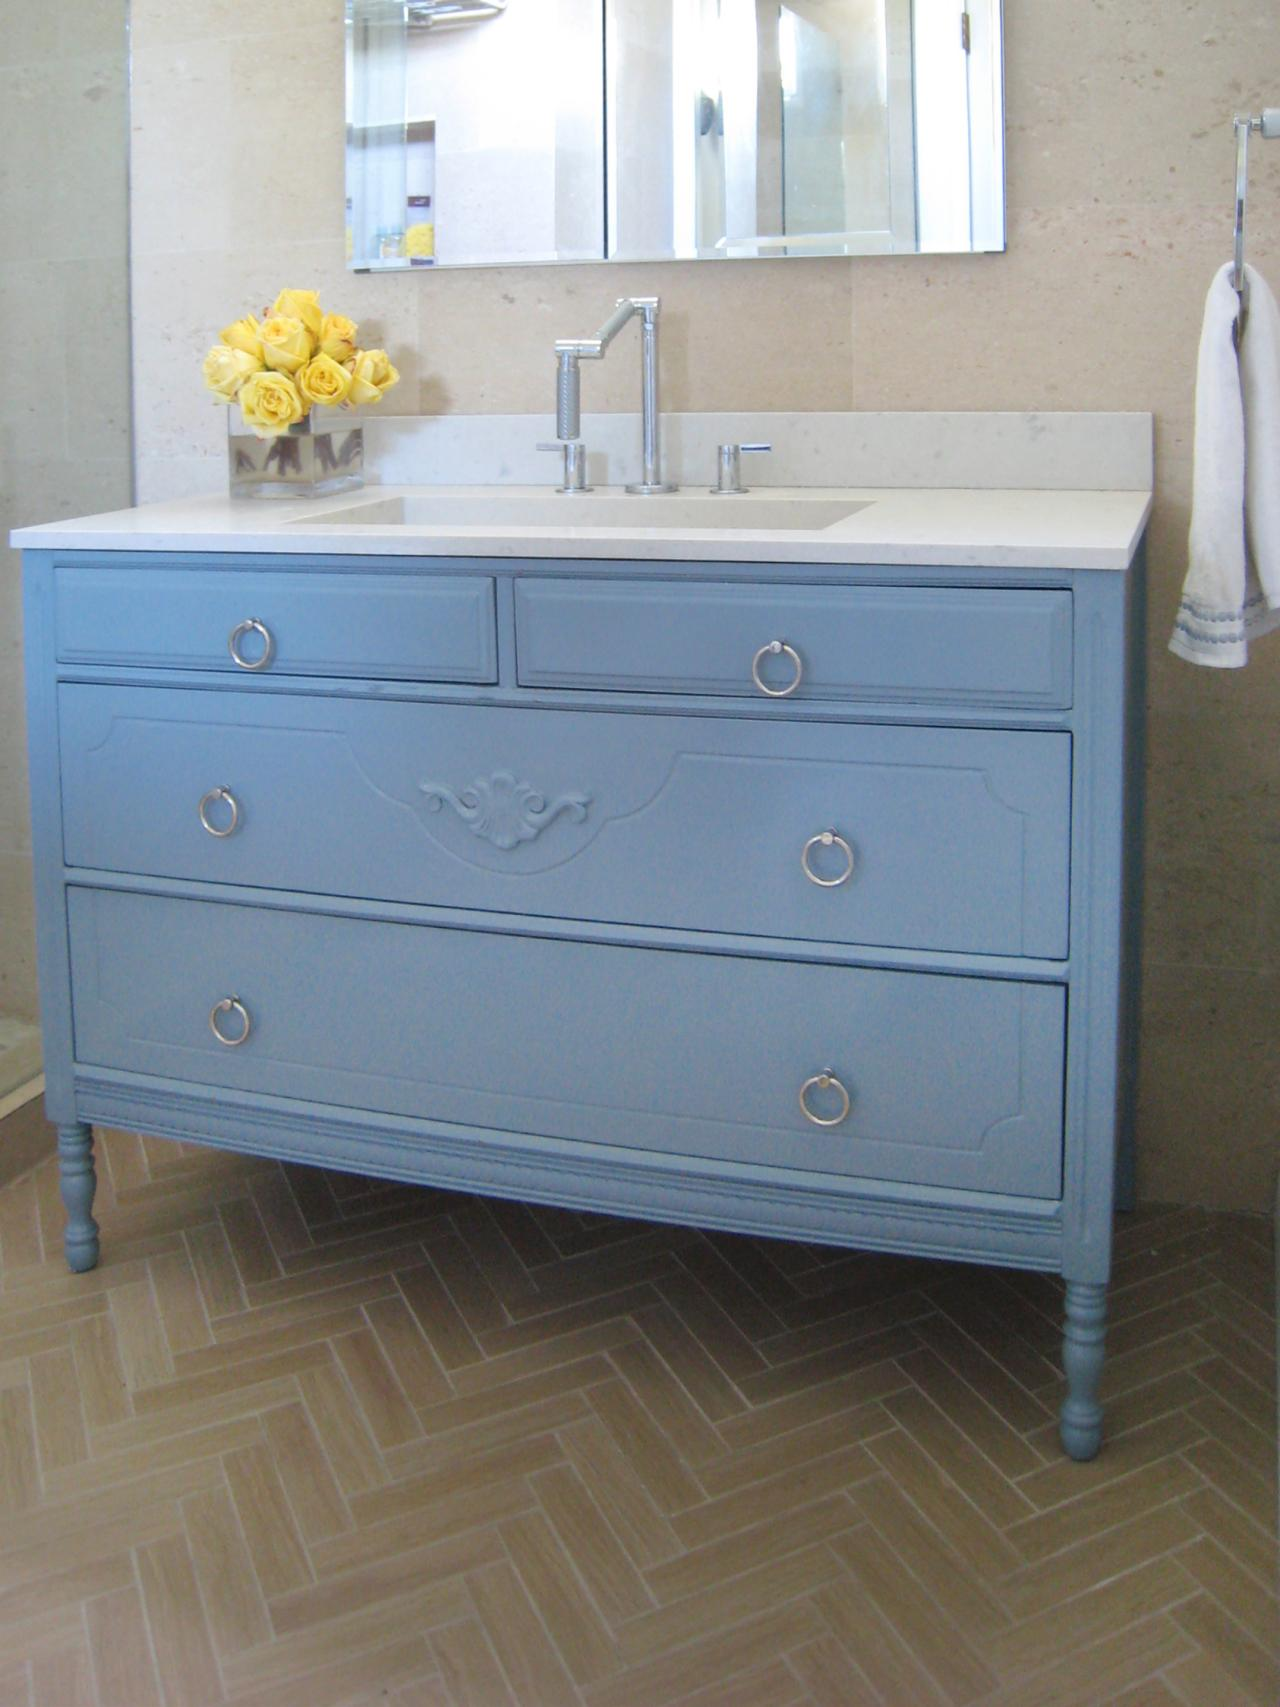 how to turn a cabinet into a bathroom vanity - Bathroom Cabinets Diy